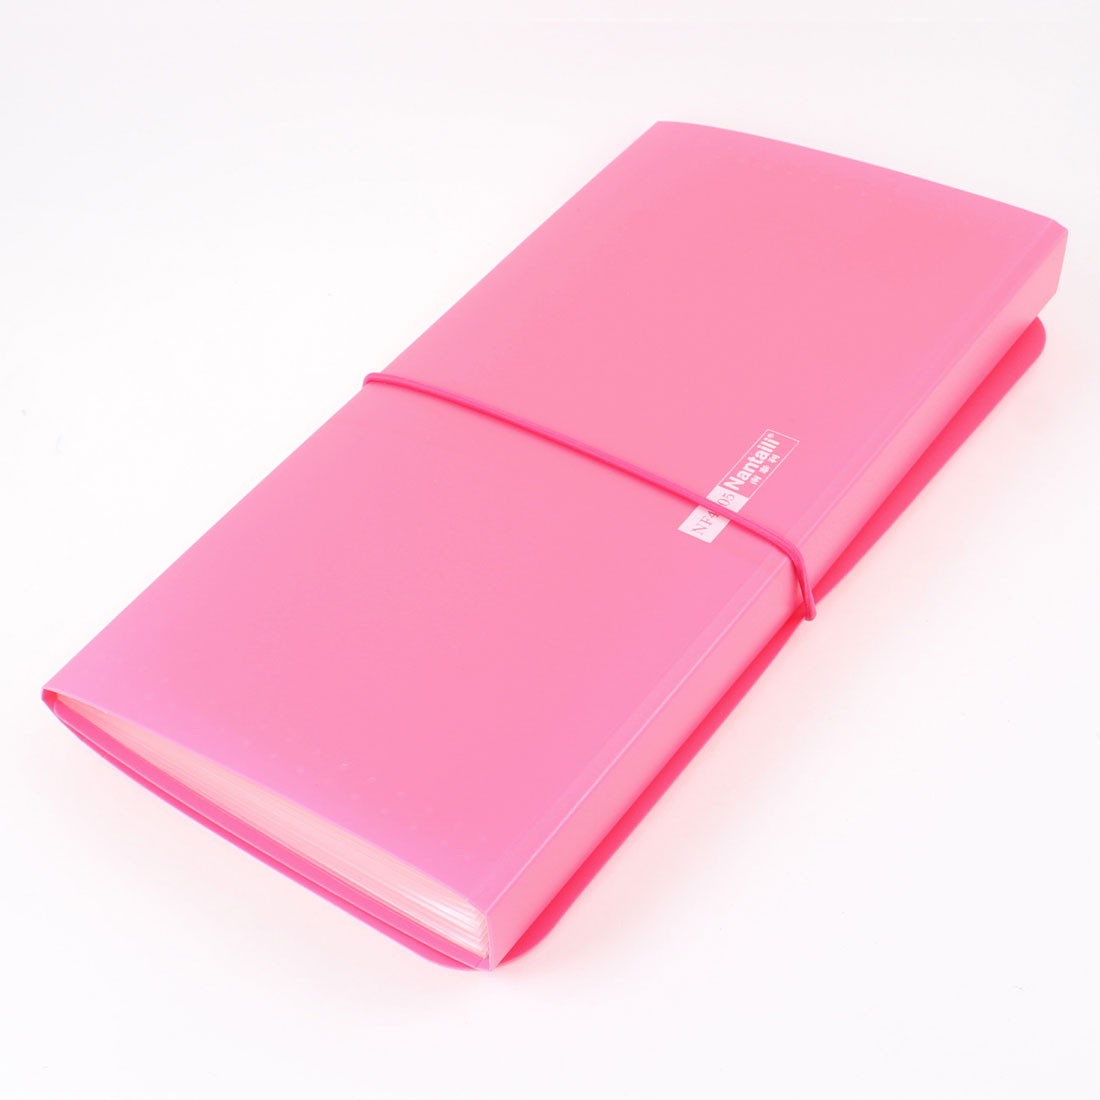 Flexible Strap Closure 13 Pocket Plastic Cover Bill Paper File Folder Fuchsia